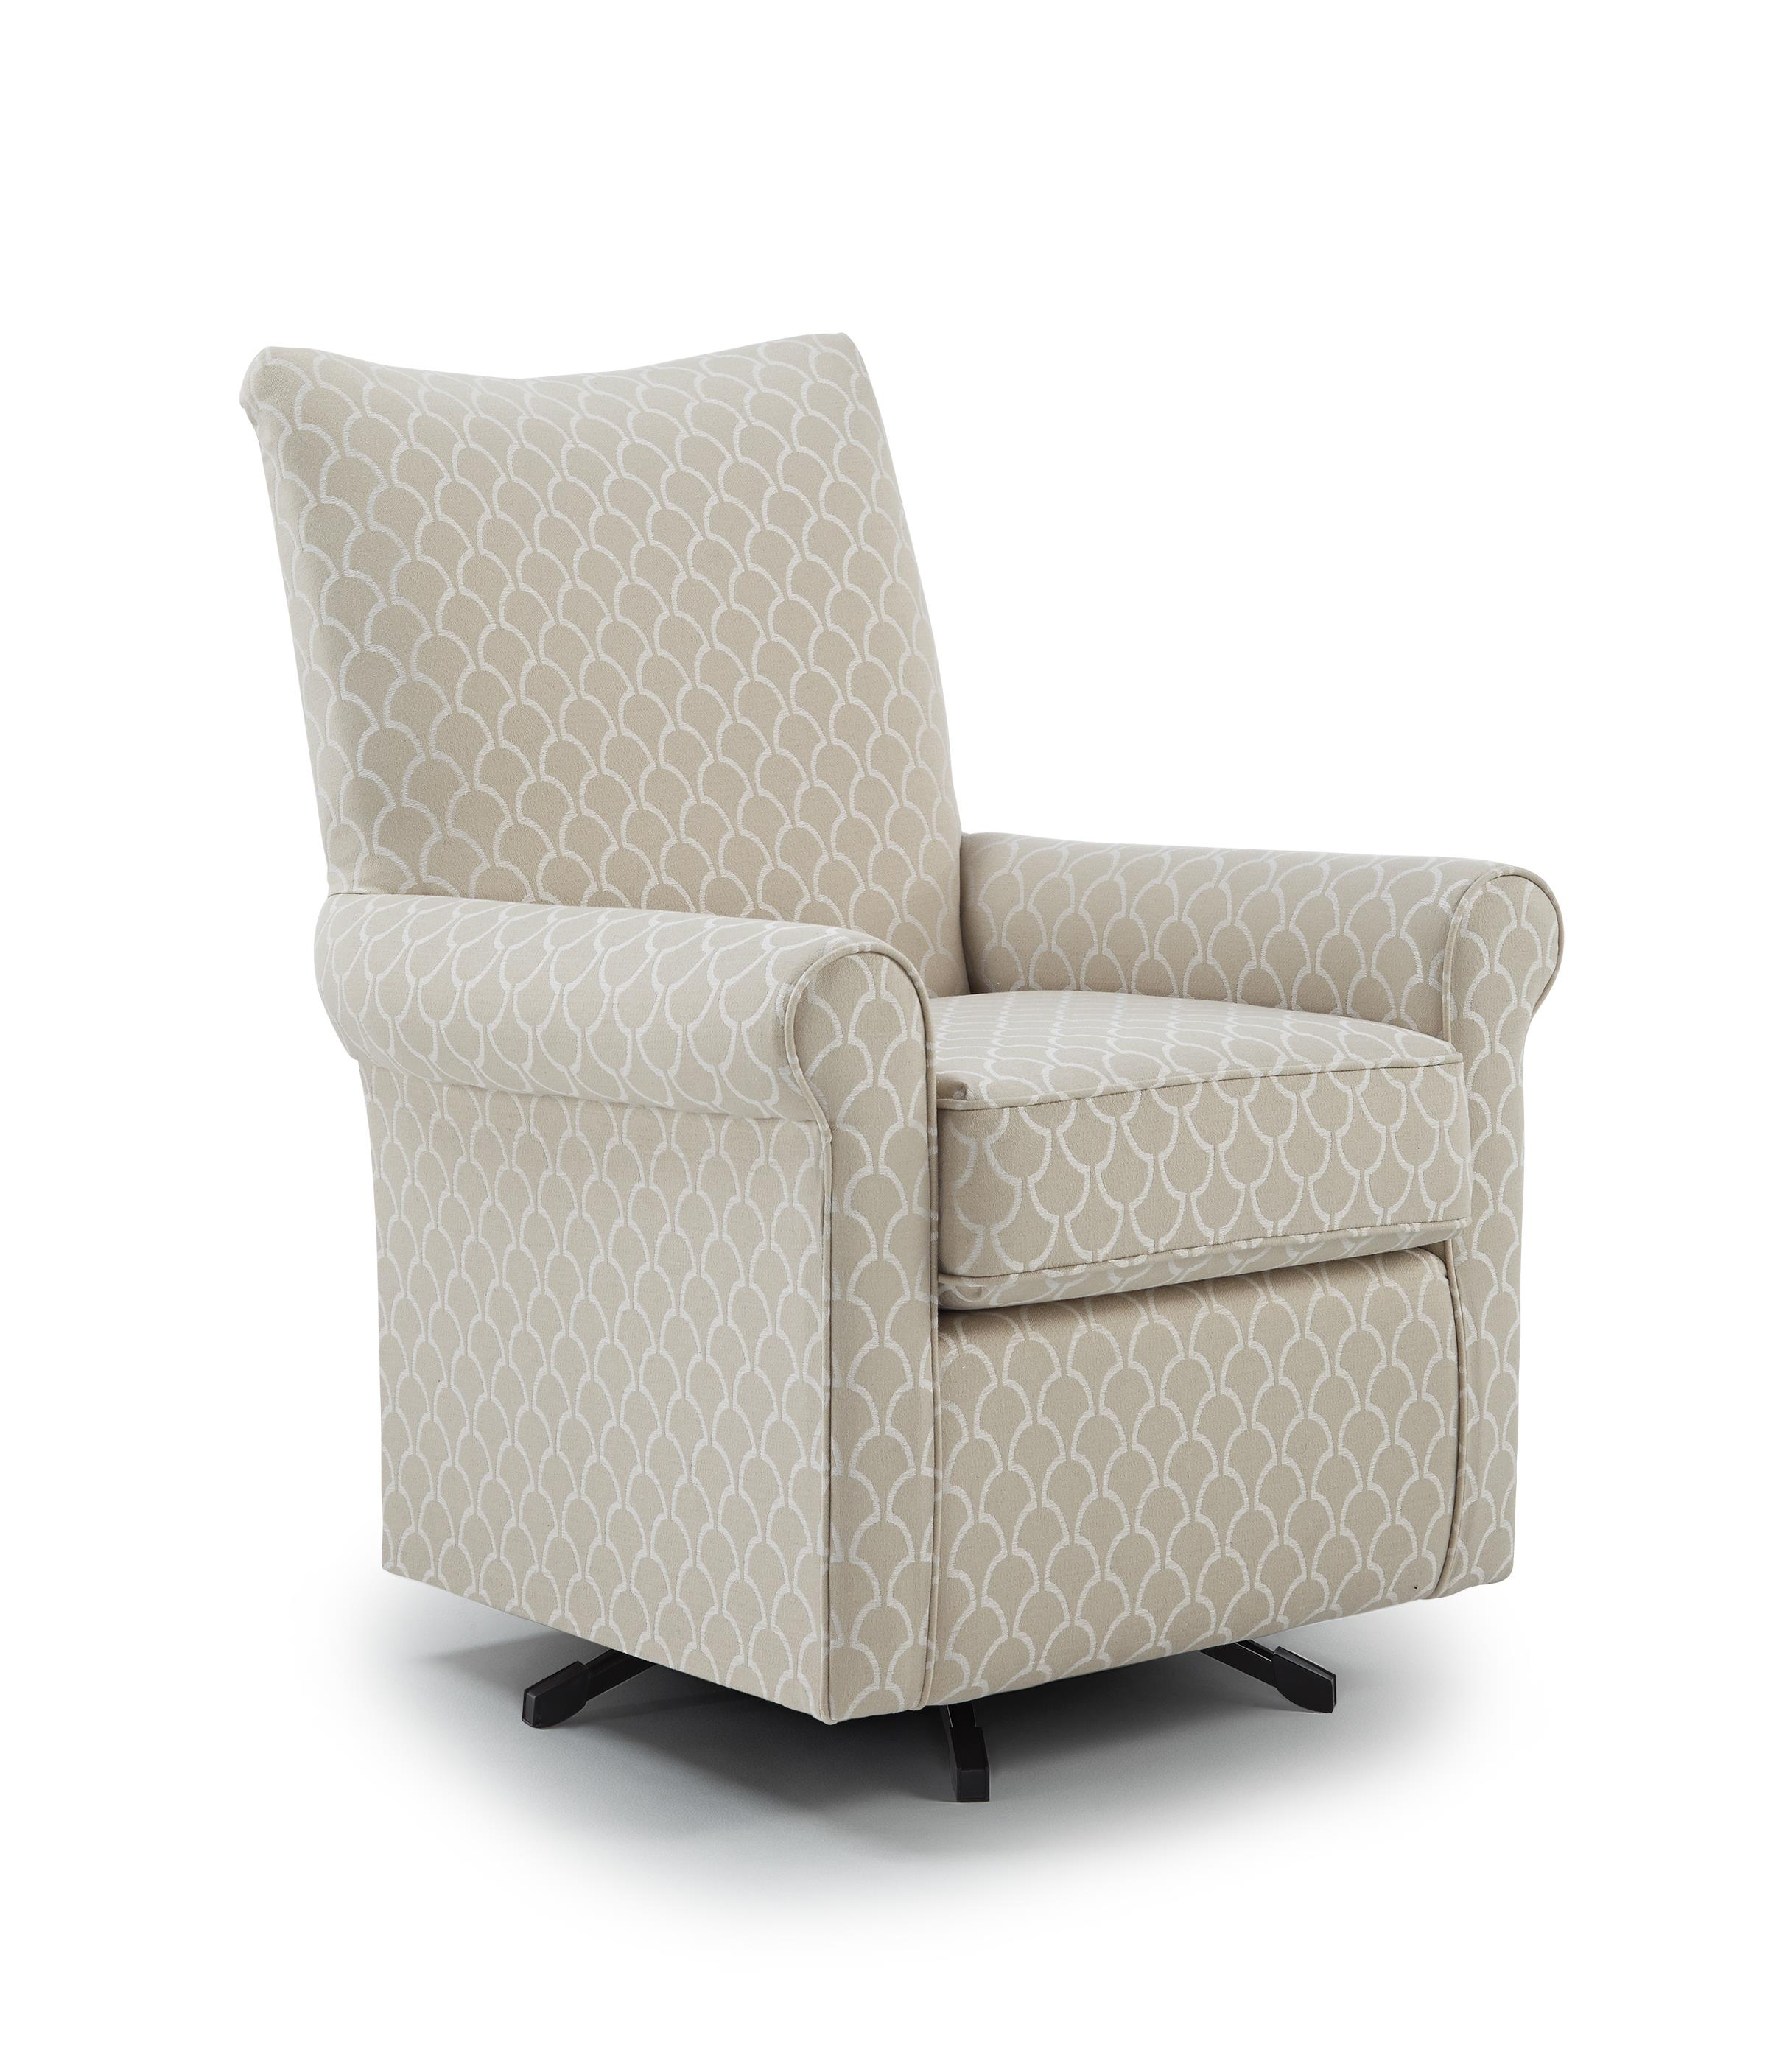 Best home furnishings chairs club traditional swivel chair with wood block feet zak 39 s fine - Swivel feet for chairs ...